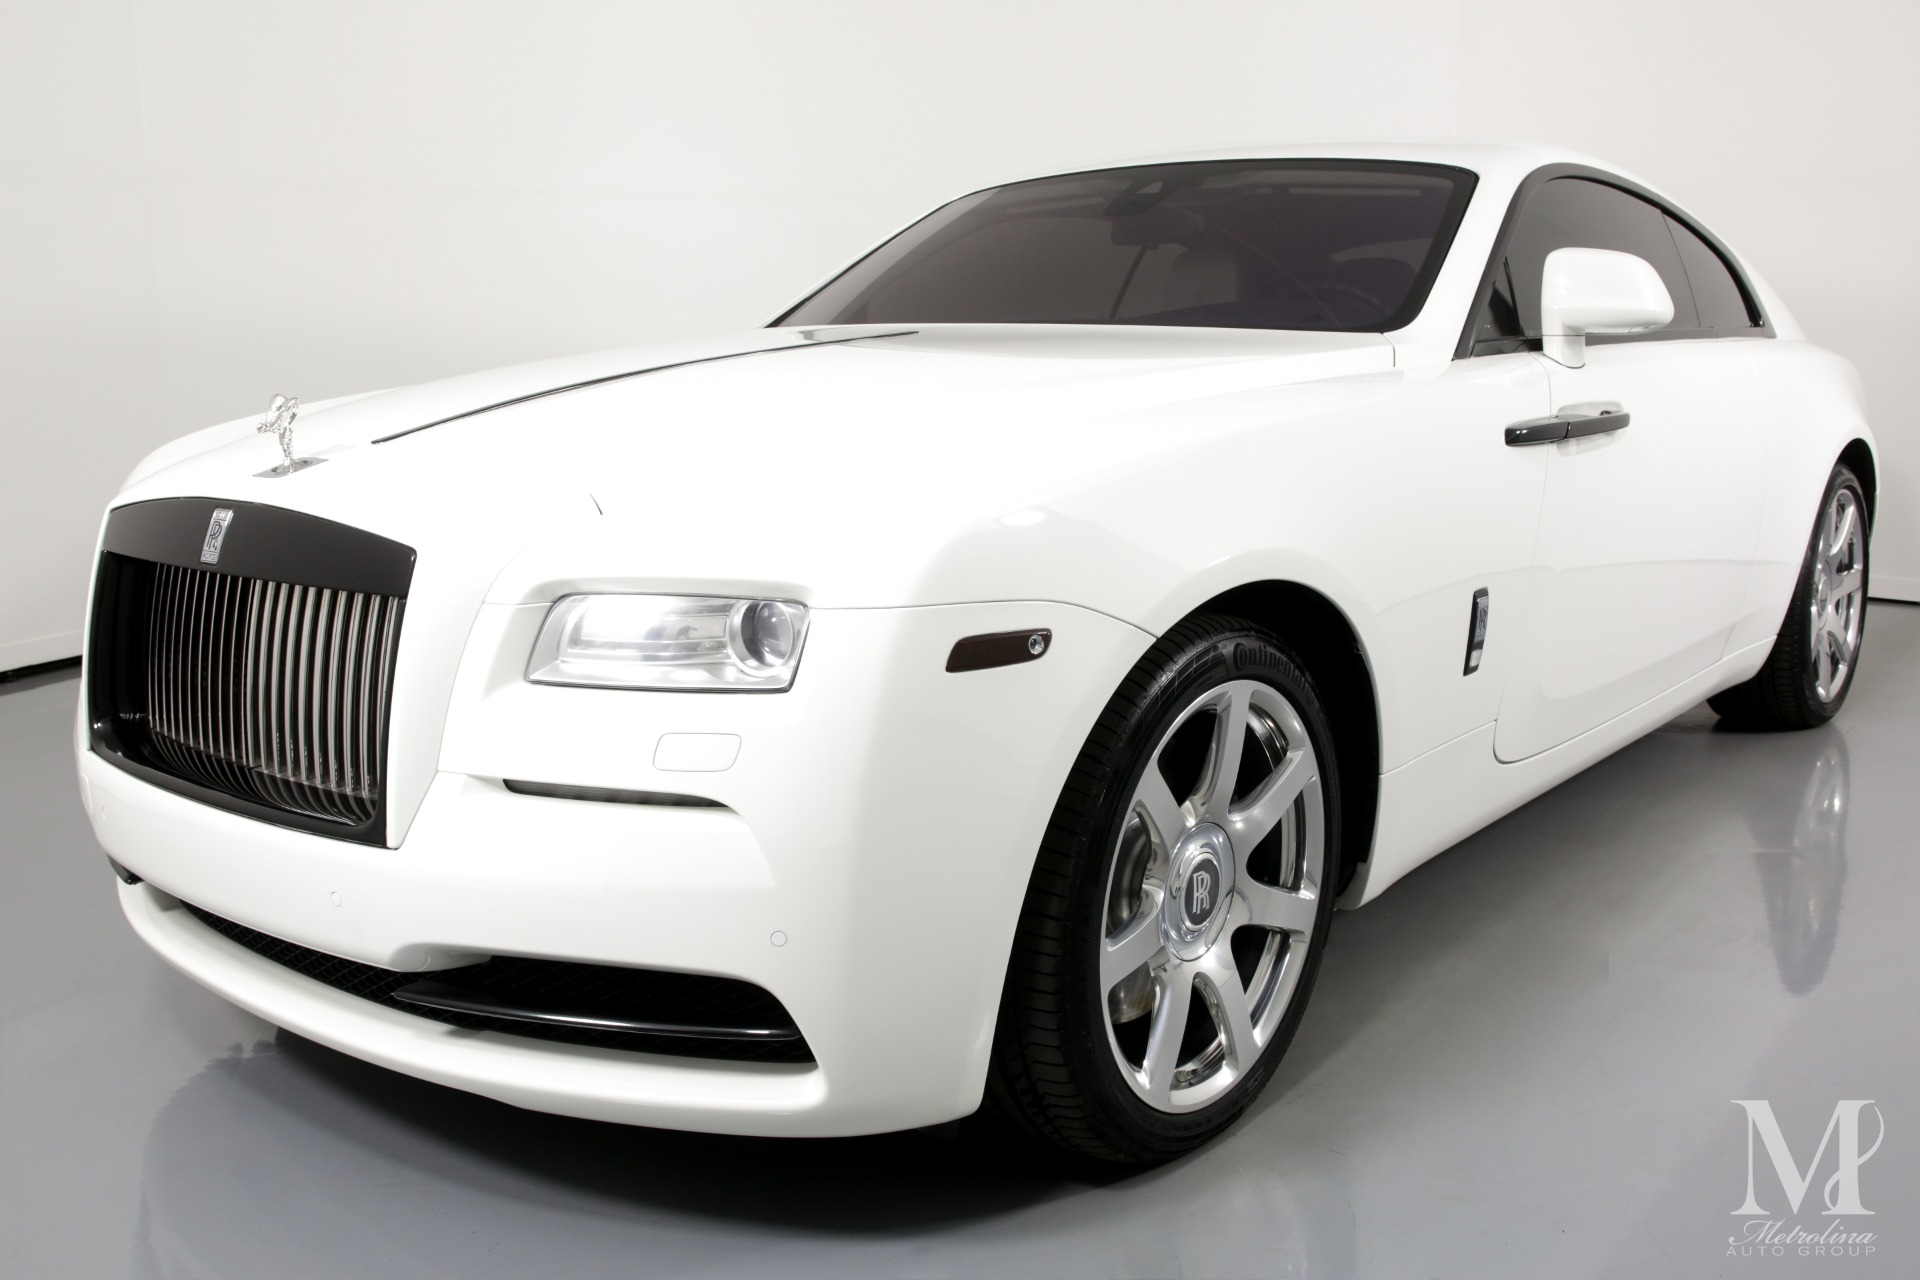 Used 2014 Rolls-Royce Wraith Base 2dr Coupe for sale $153,996 at Metrolina Auto Group in Charlotte NC 28217 - 4